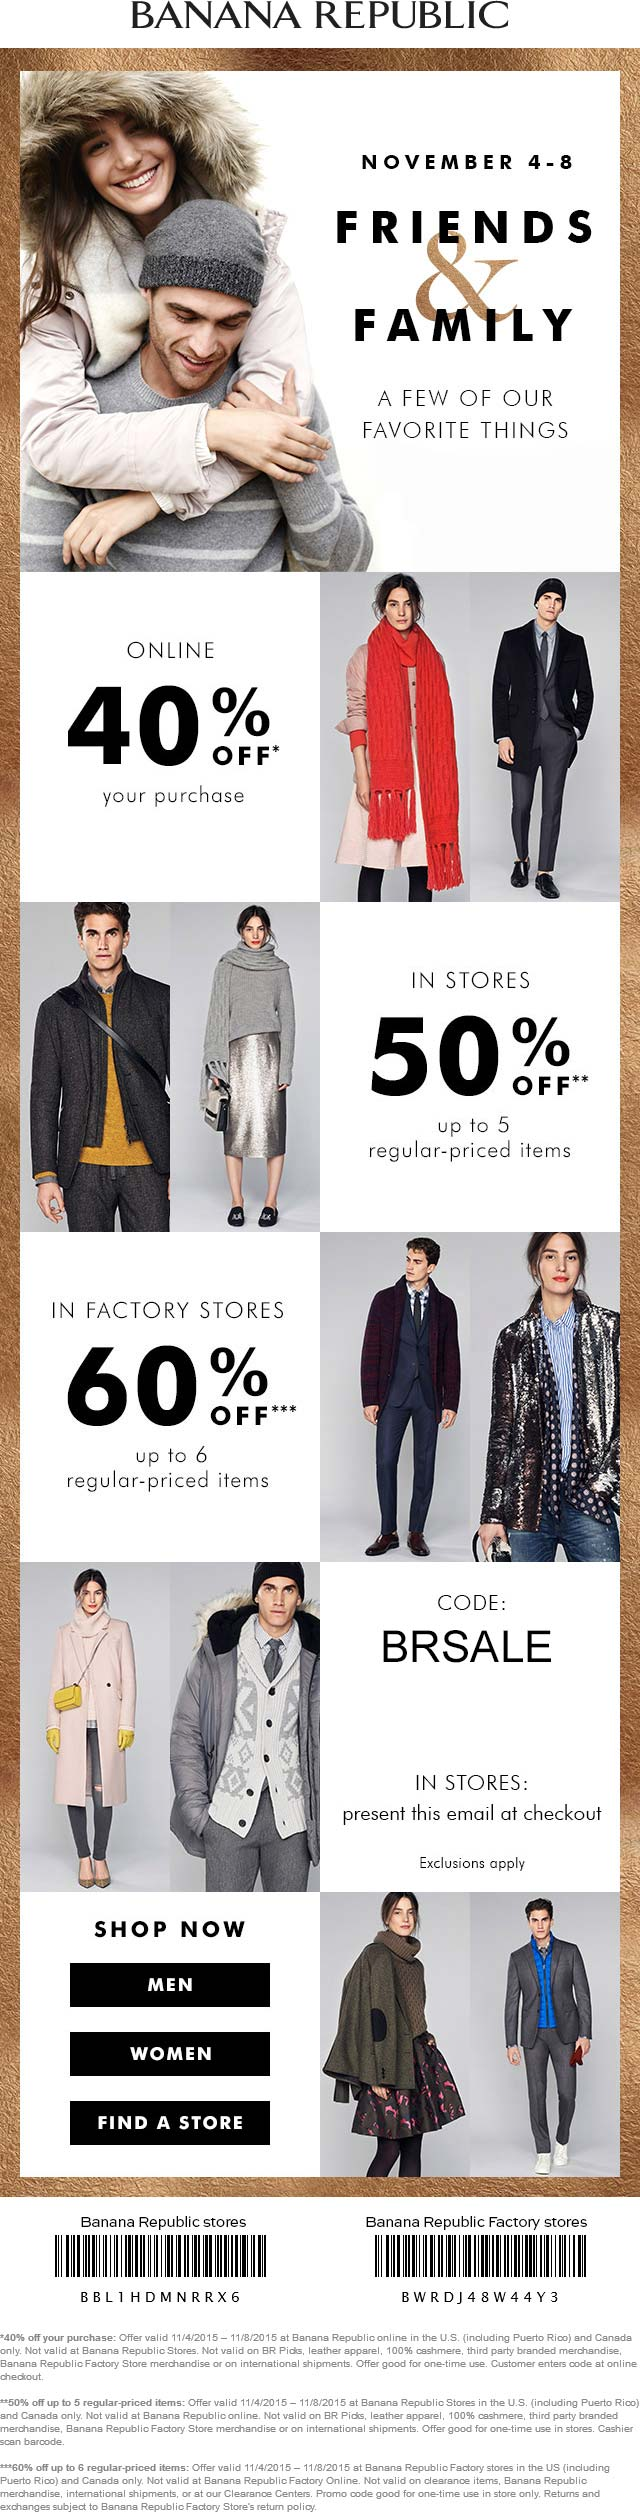 Banana Republic Coupon September 2017 Extra 40-60% off at Banana Republic & factory locations, or online via promo code BRSALE